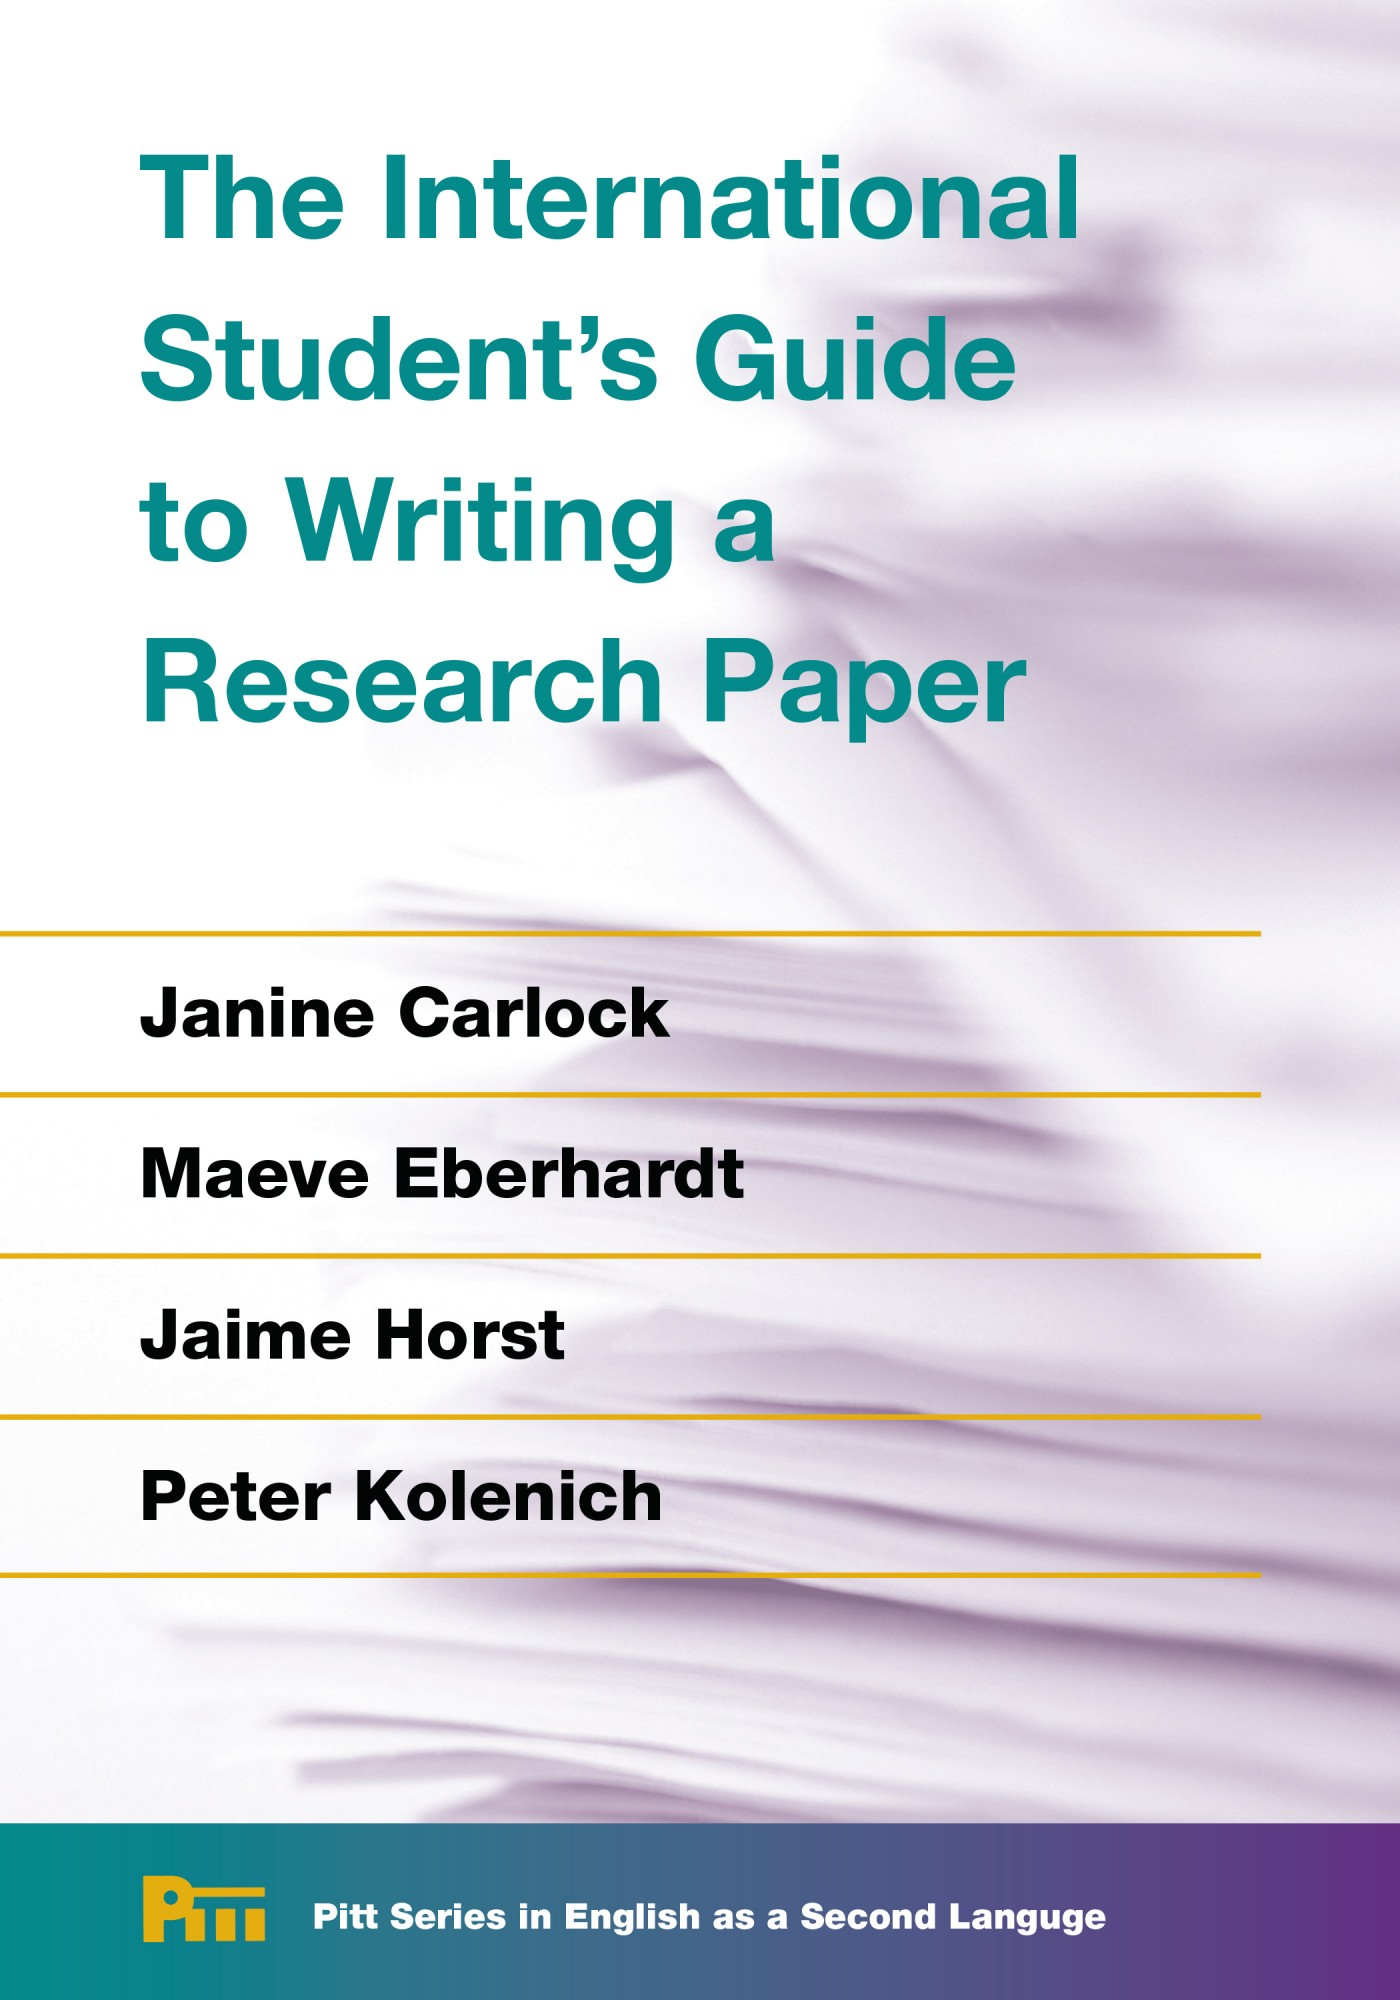 012 Writing Of Research Paper Fascinating Sample Introduction Steps A Pdf 1400